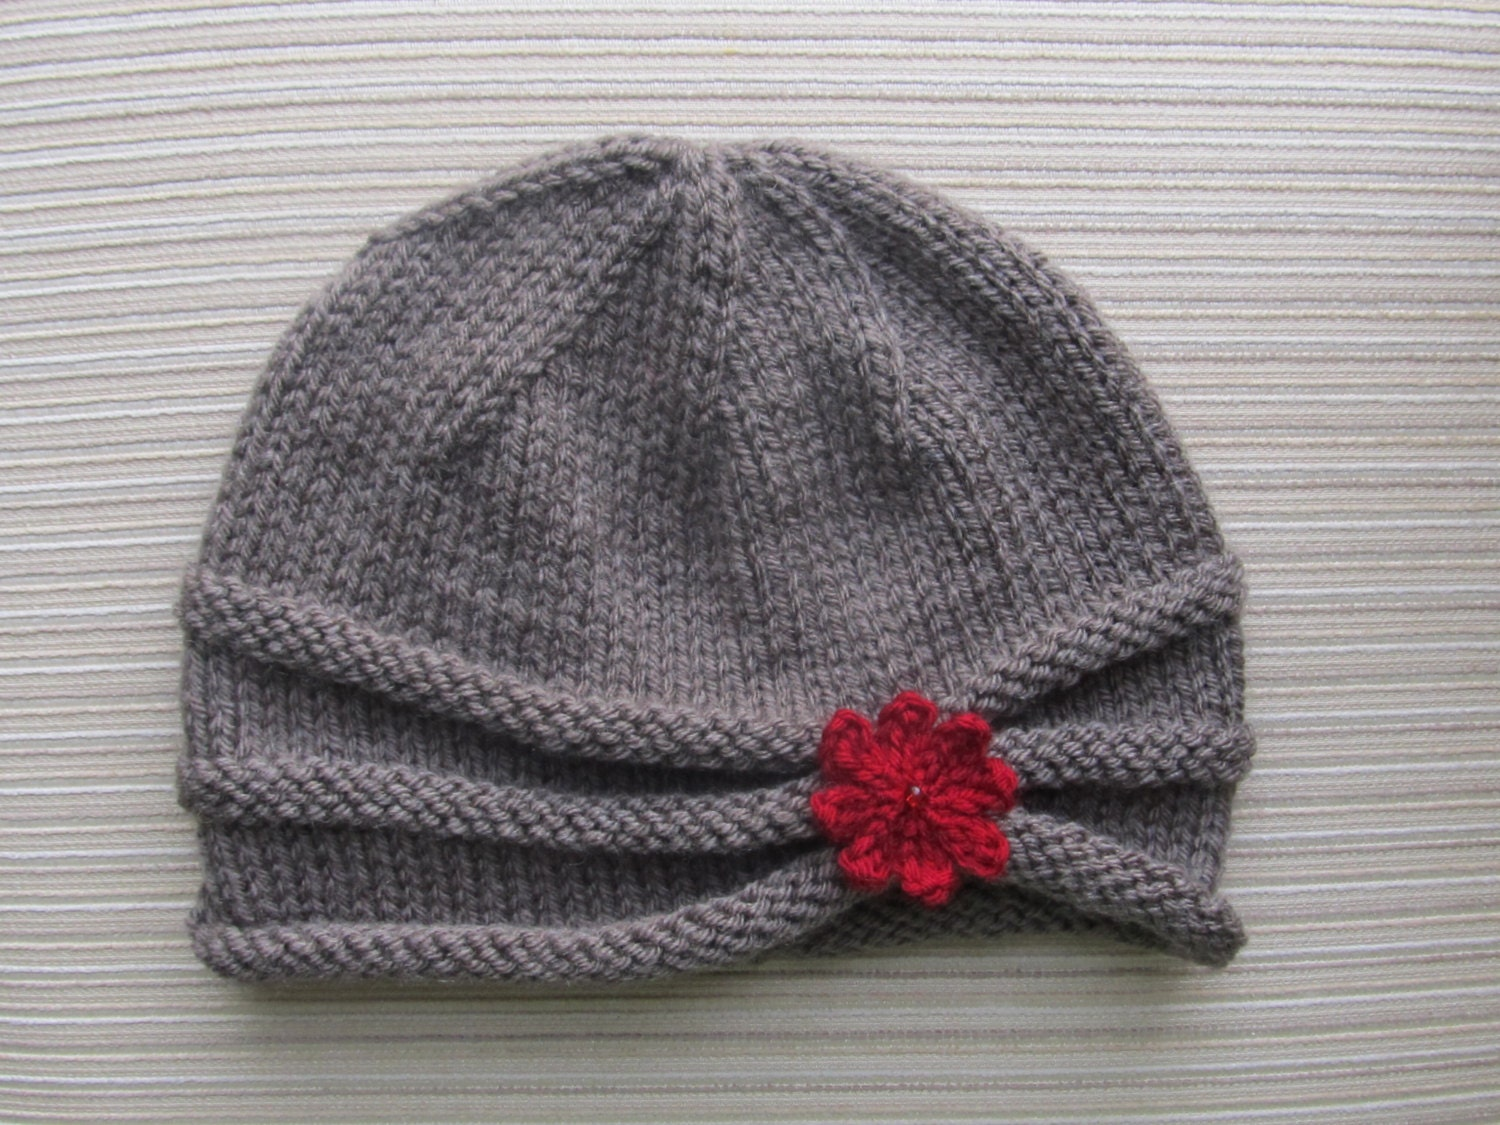 Knitting Pattern Rolled Brim Hat in Size Adult #87 from handknitsbyElena on E...